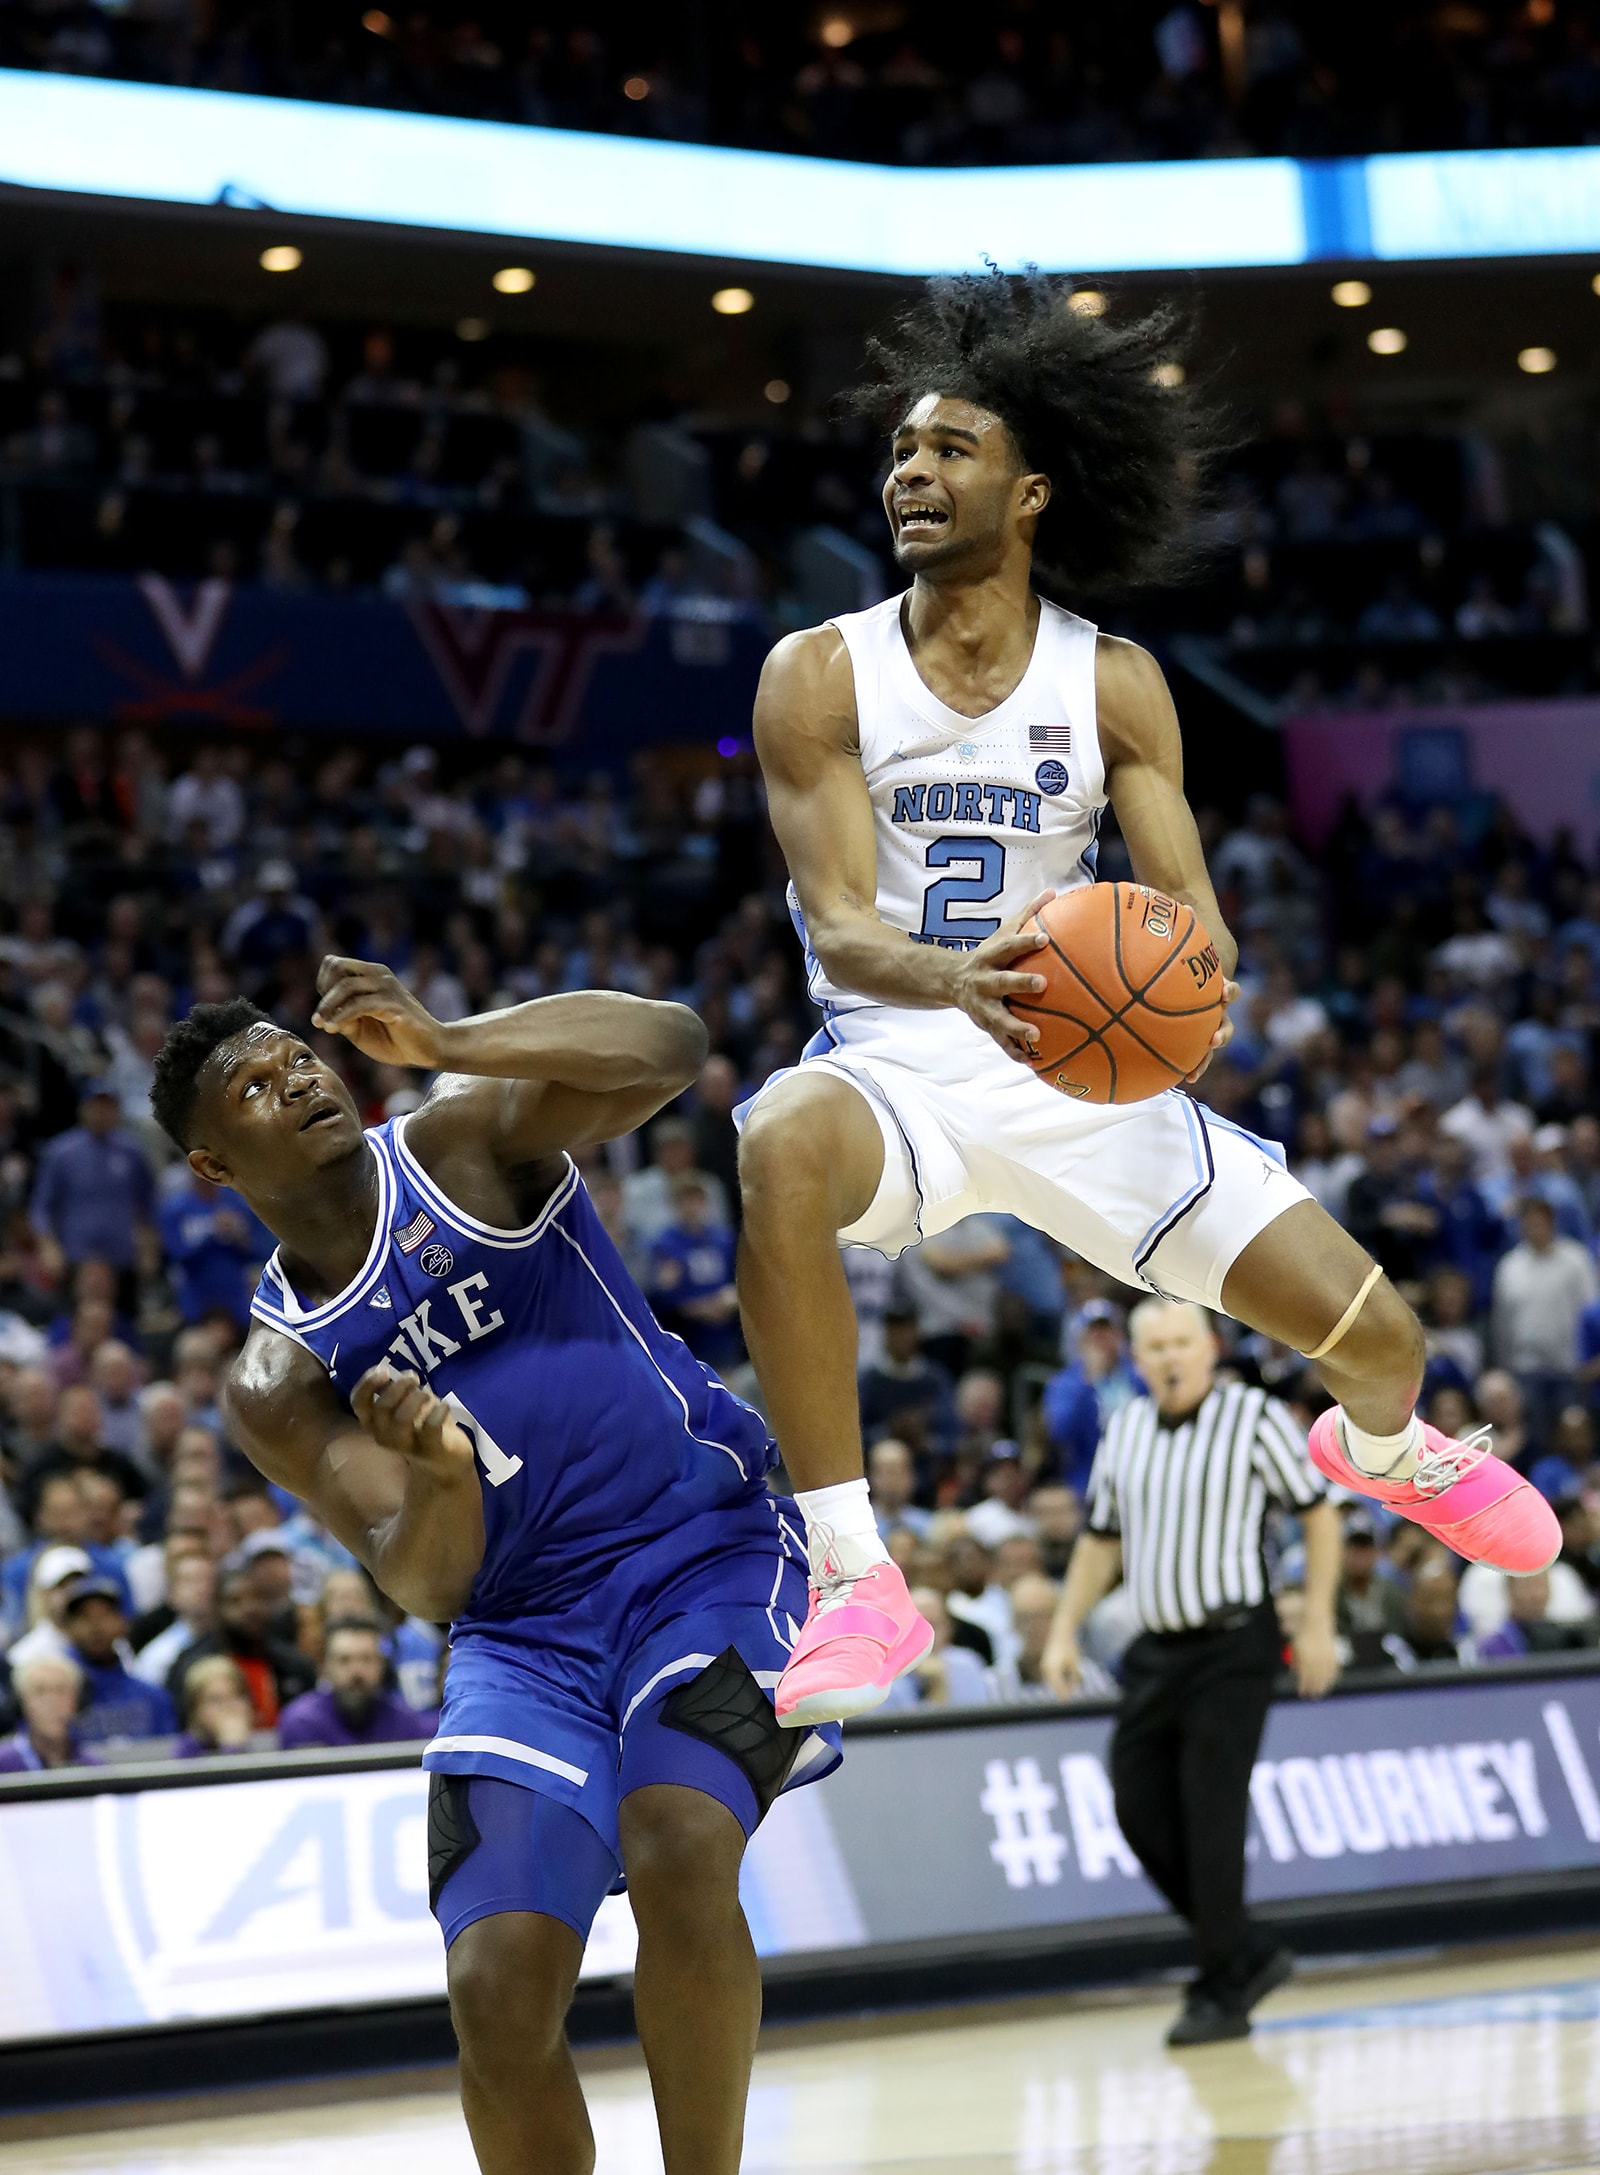 Coby and Zion playing in the NCAA